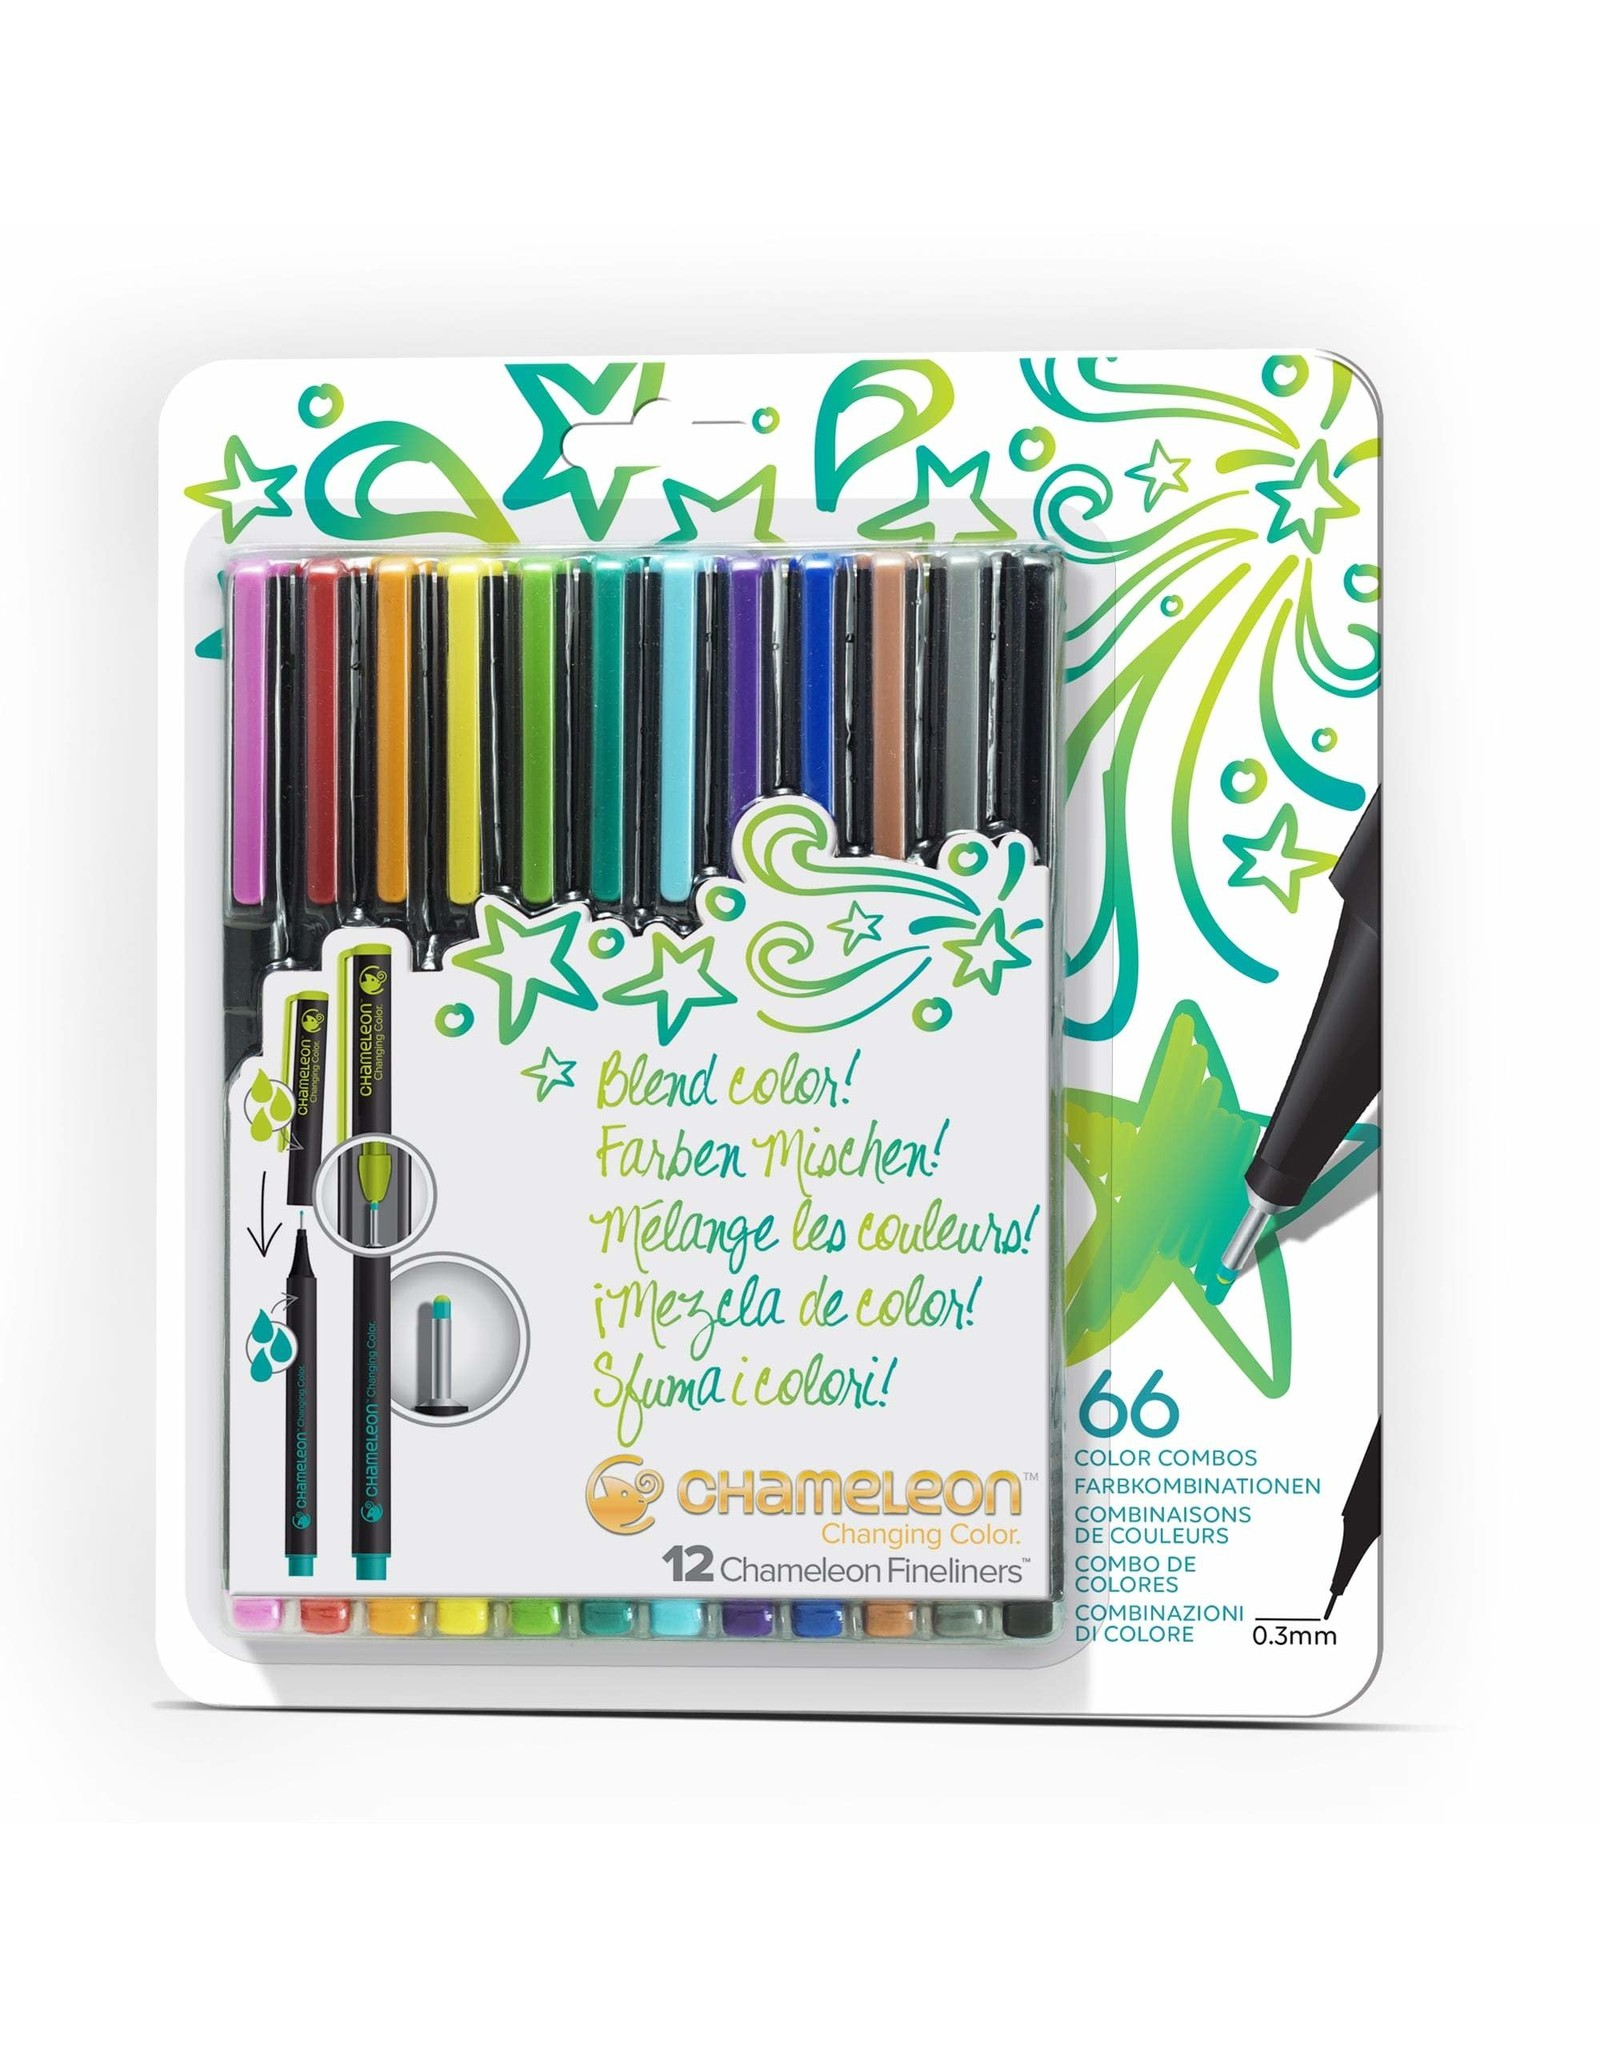 Imagination International Chameleon Fineliners 12 pack, Bright Colours